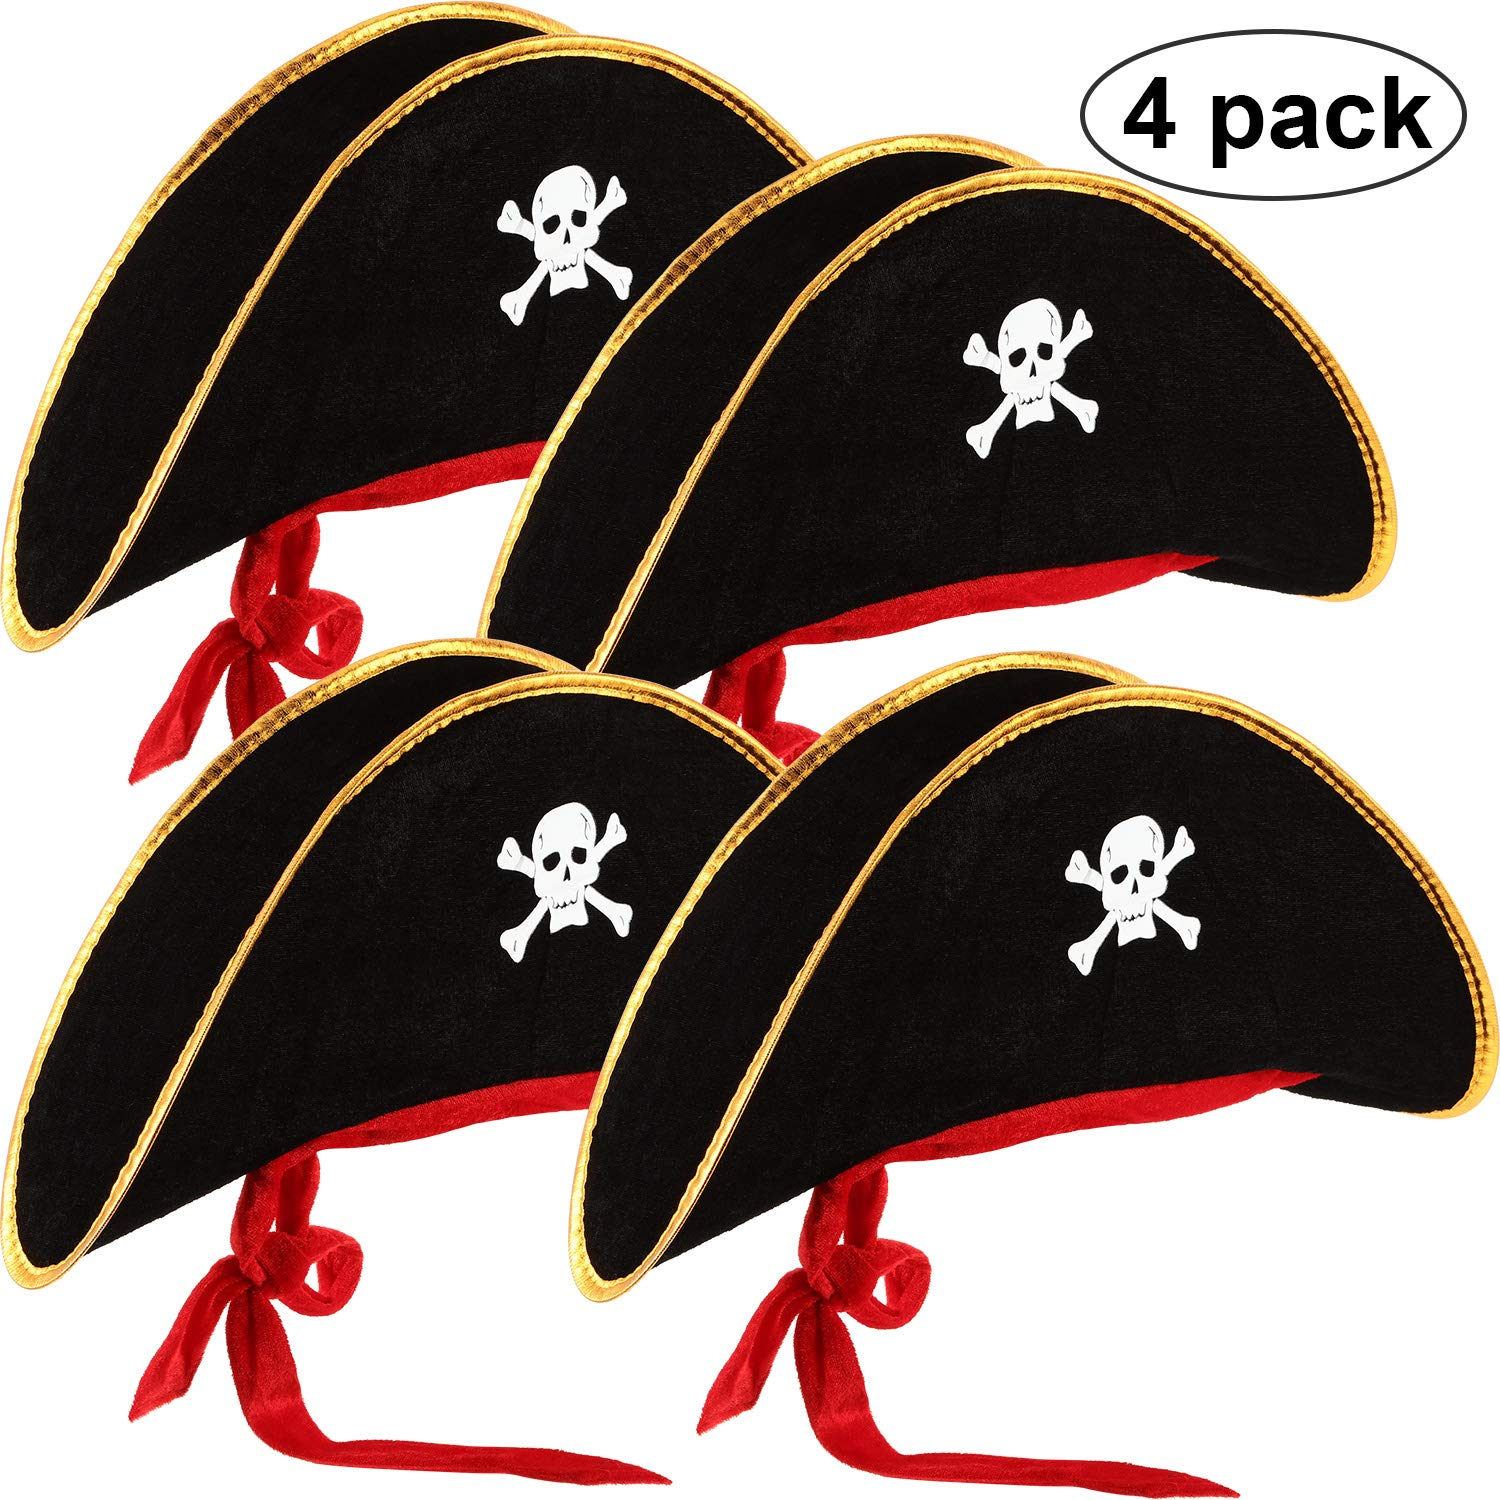 4 Pieces Pirate Hat Classic Skull Print Pirate Captain Costume Cap for Halloween Masquerade Party Cosplay Hat Prop by Hsei